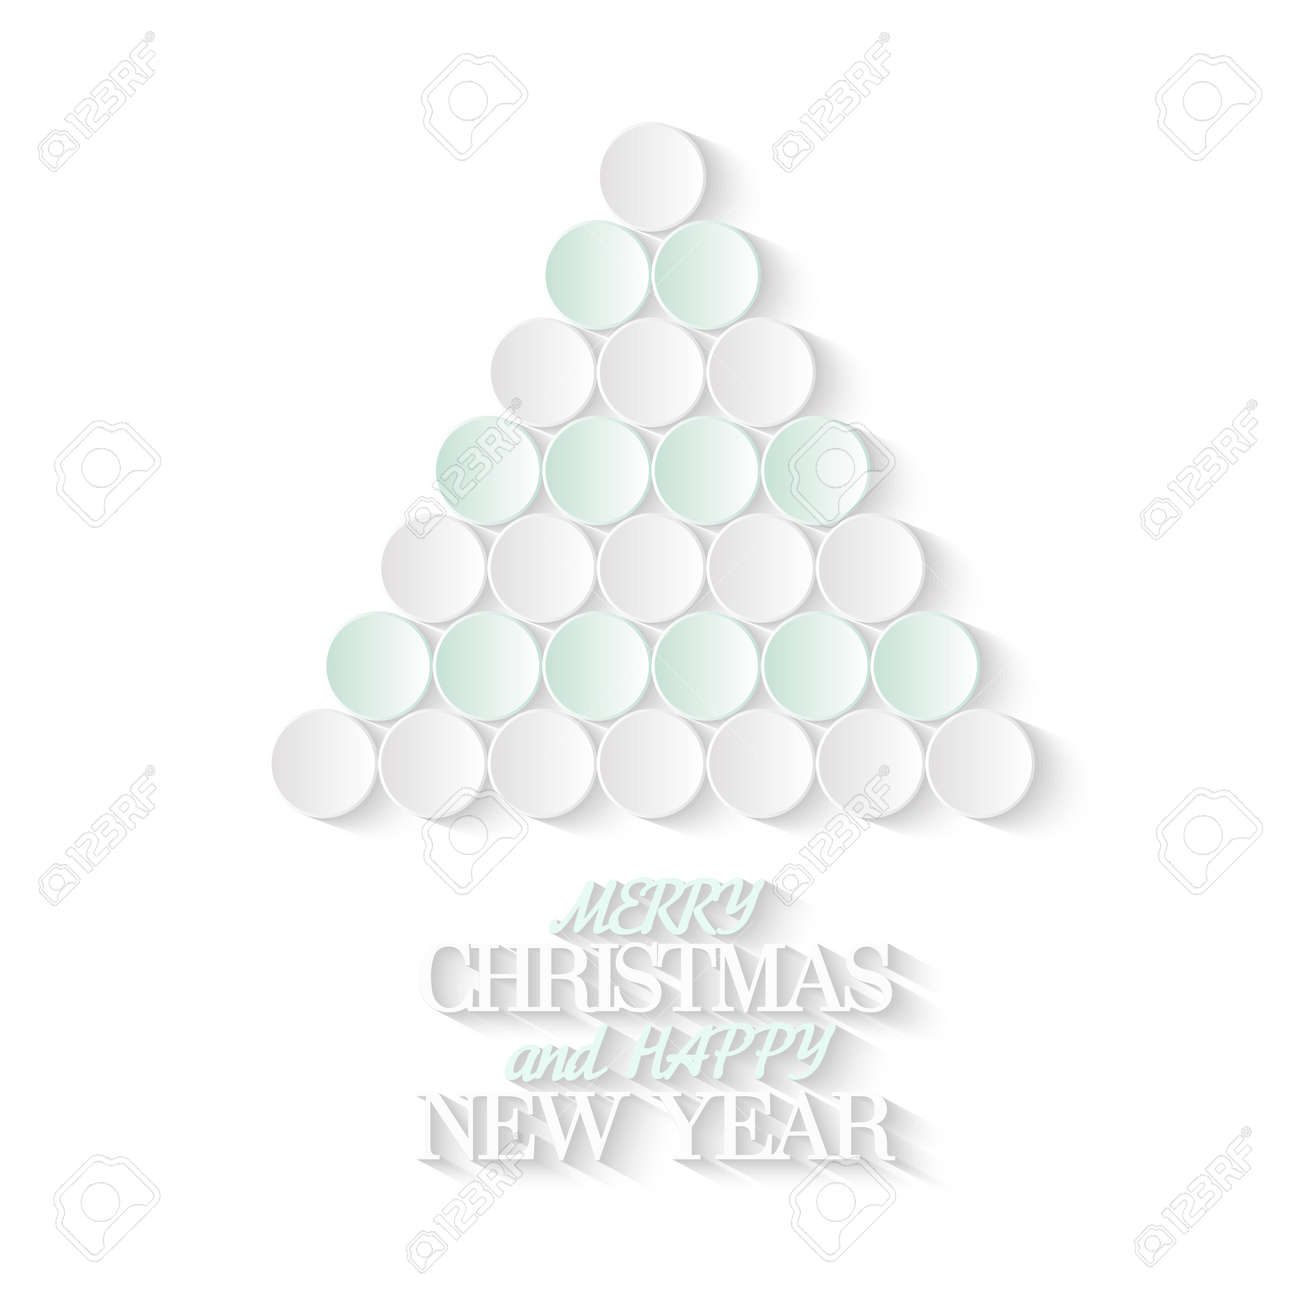 3d Paper Christmas Tree Template.Creative Christmas Tree Consists From 3d Paper Circles Merry